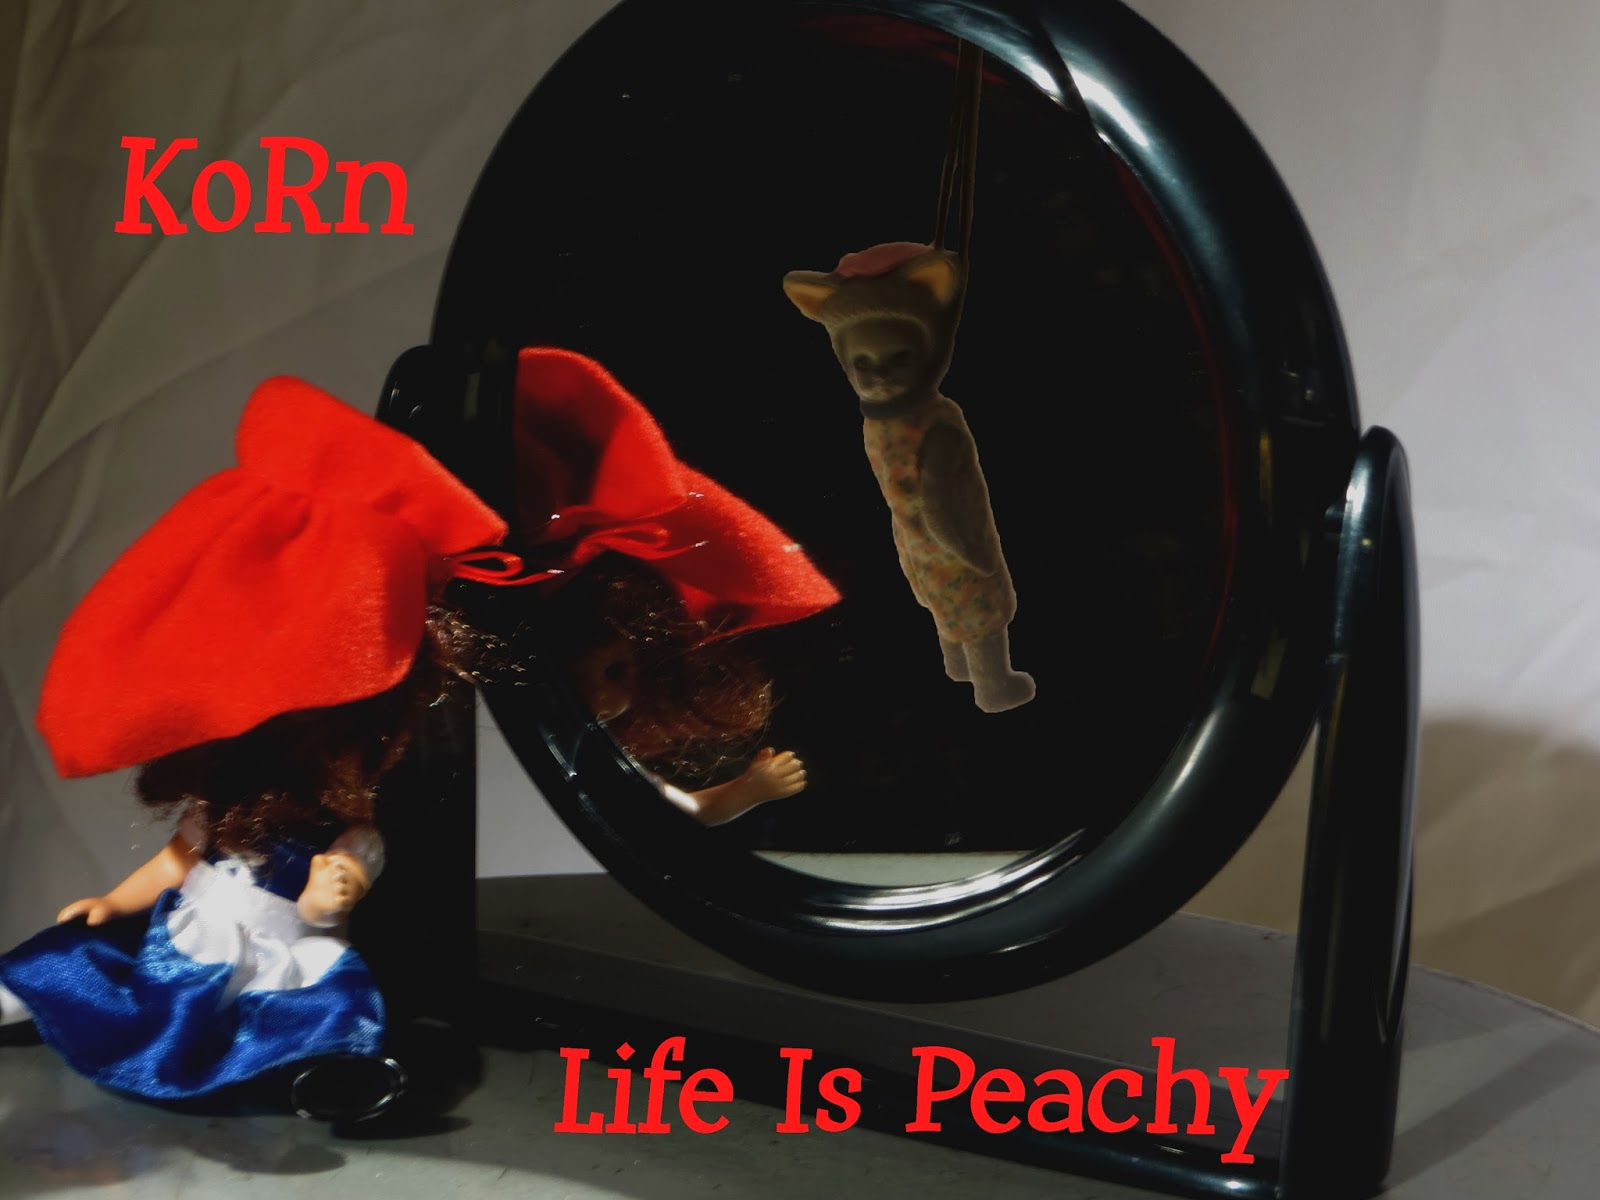 Korn Life is Peachy Cover jpgKorn Life Is Peachy Album Cover